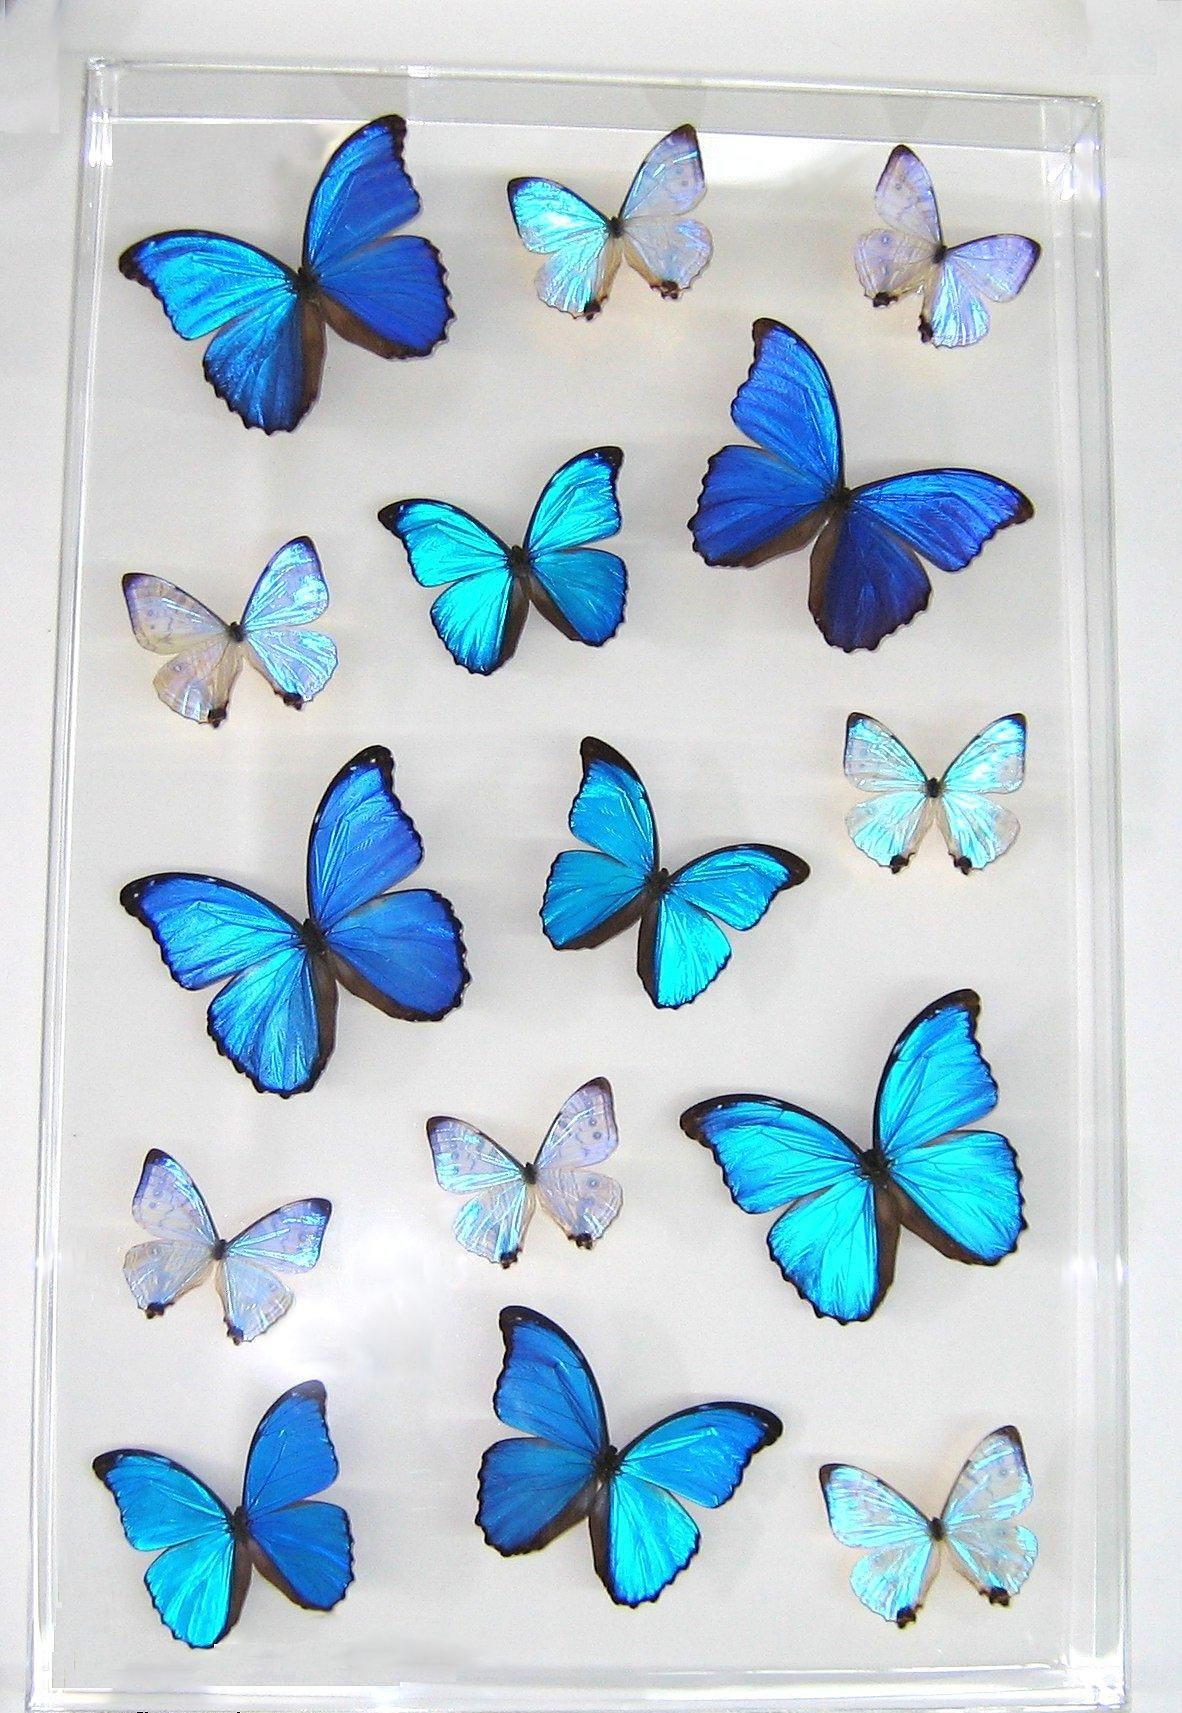 Blue Butterfly Gifts & Merchandise | Redbubble